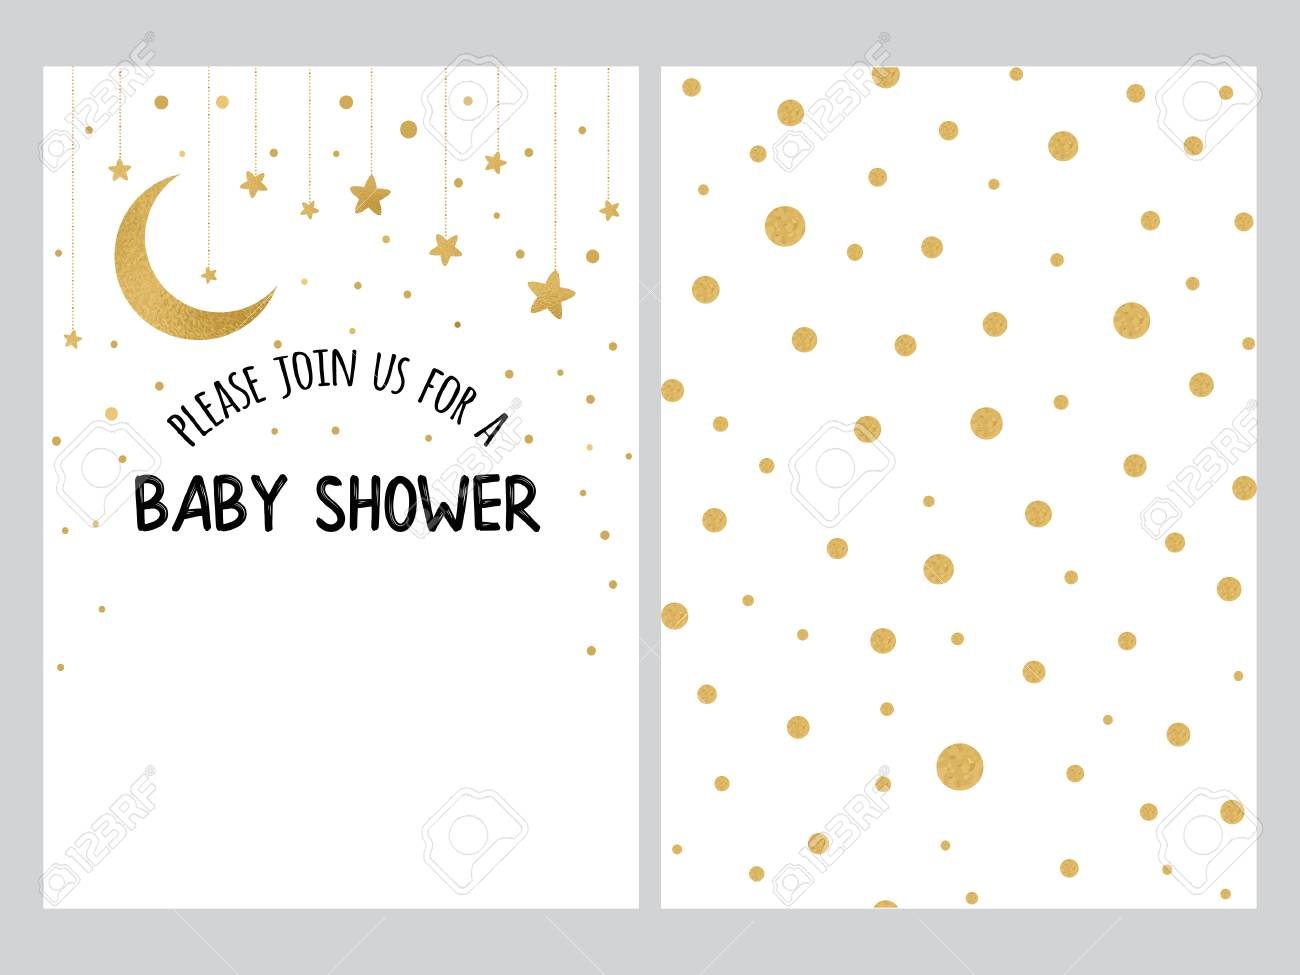 baby shower invitation template background with gold polka dot